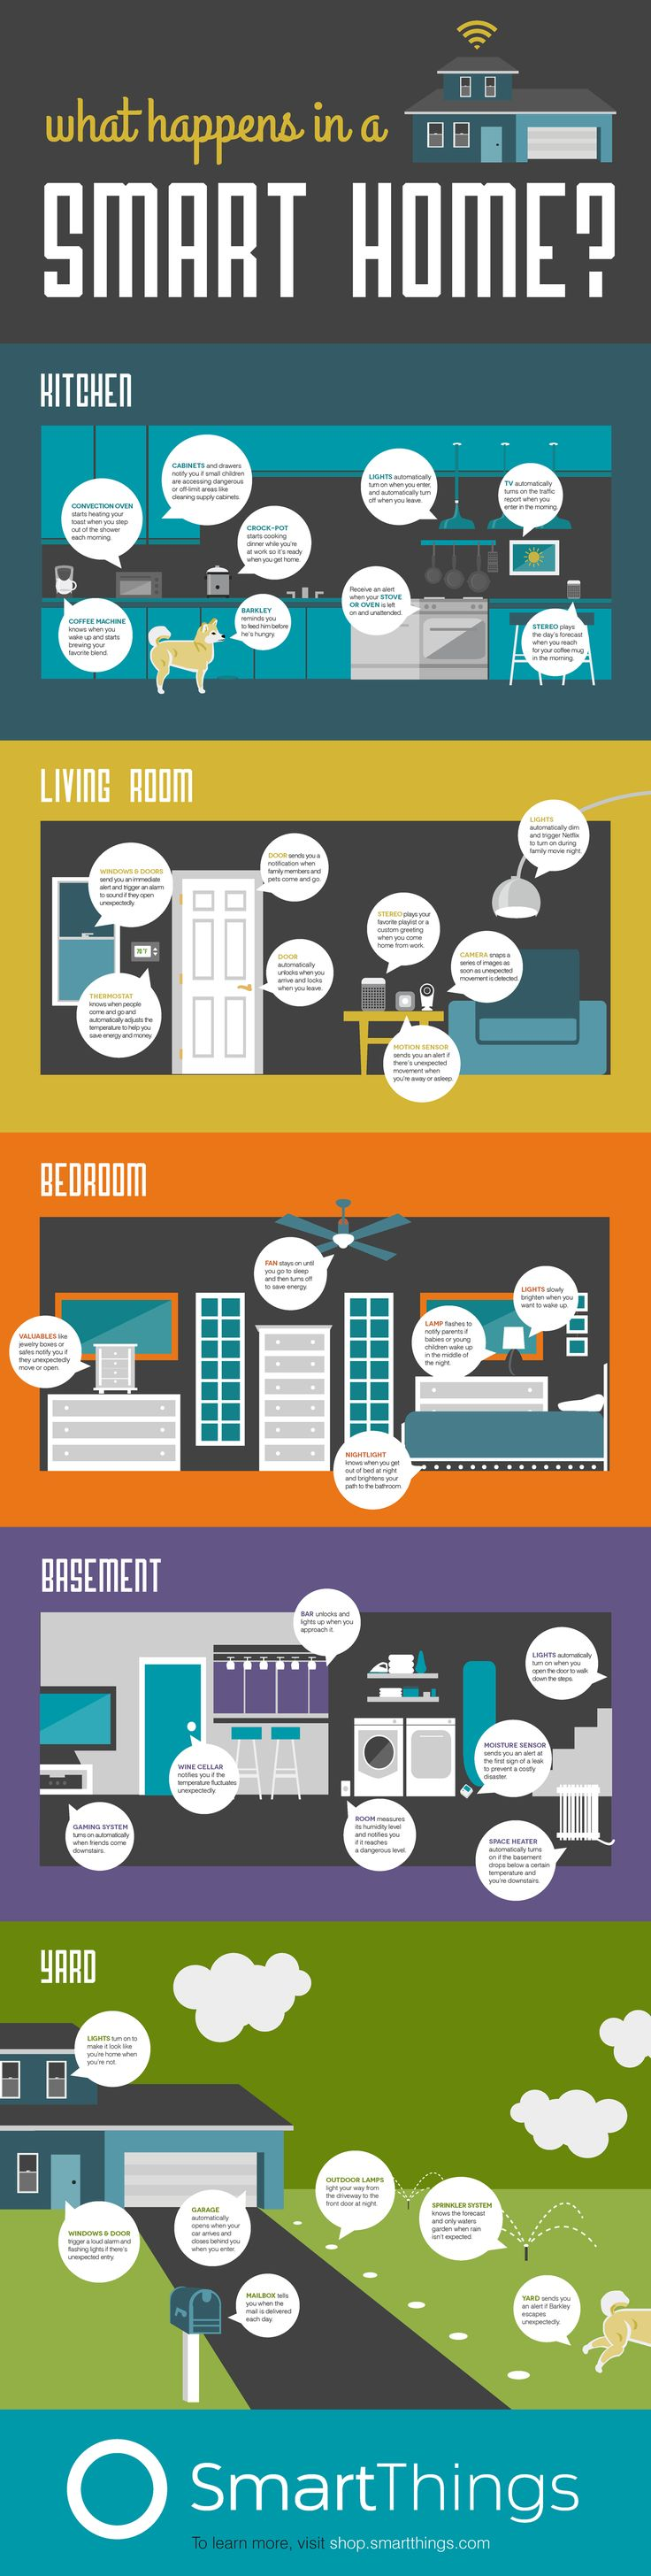 medium resolution of smart home on pinterest explore 50 ideas with smart home technology smart home control and smart home automation and more